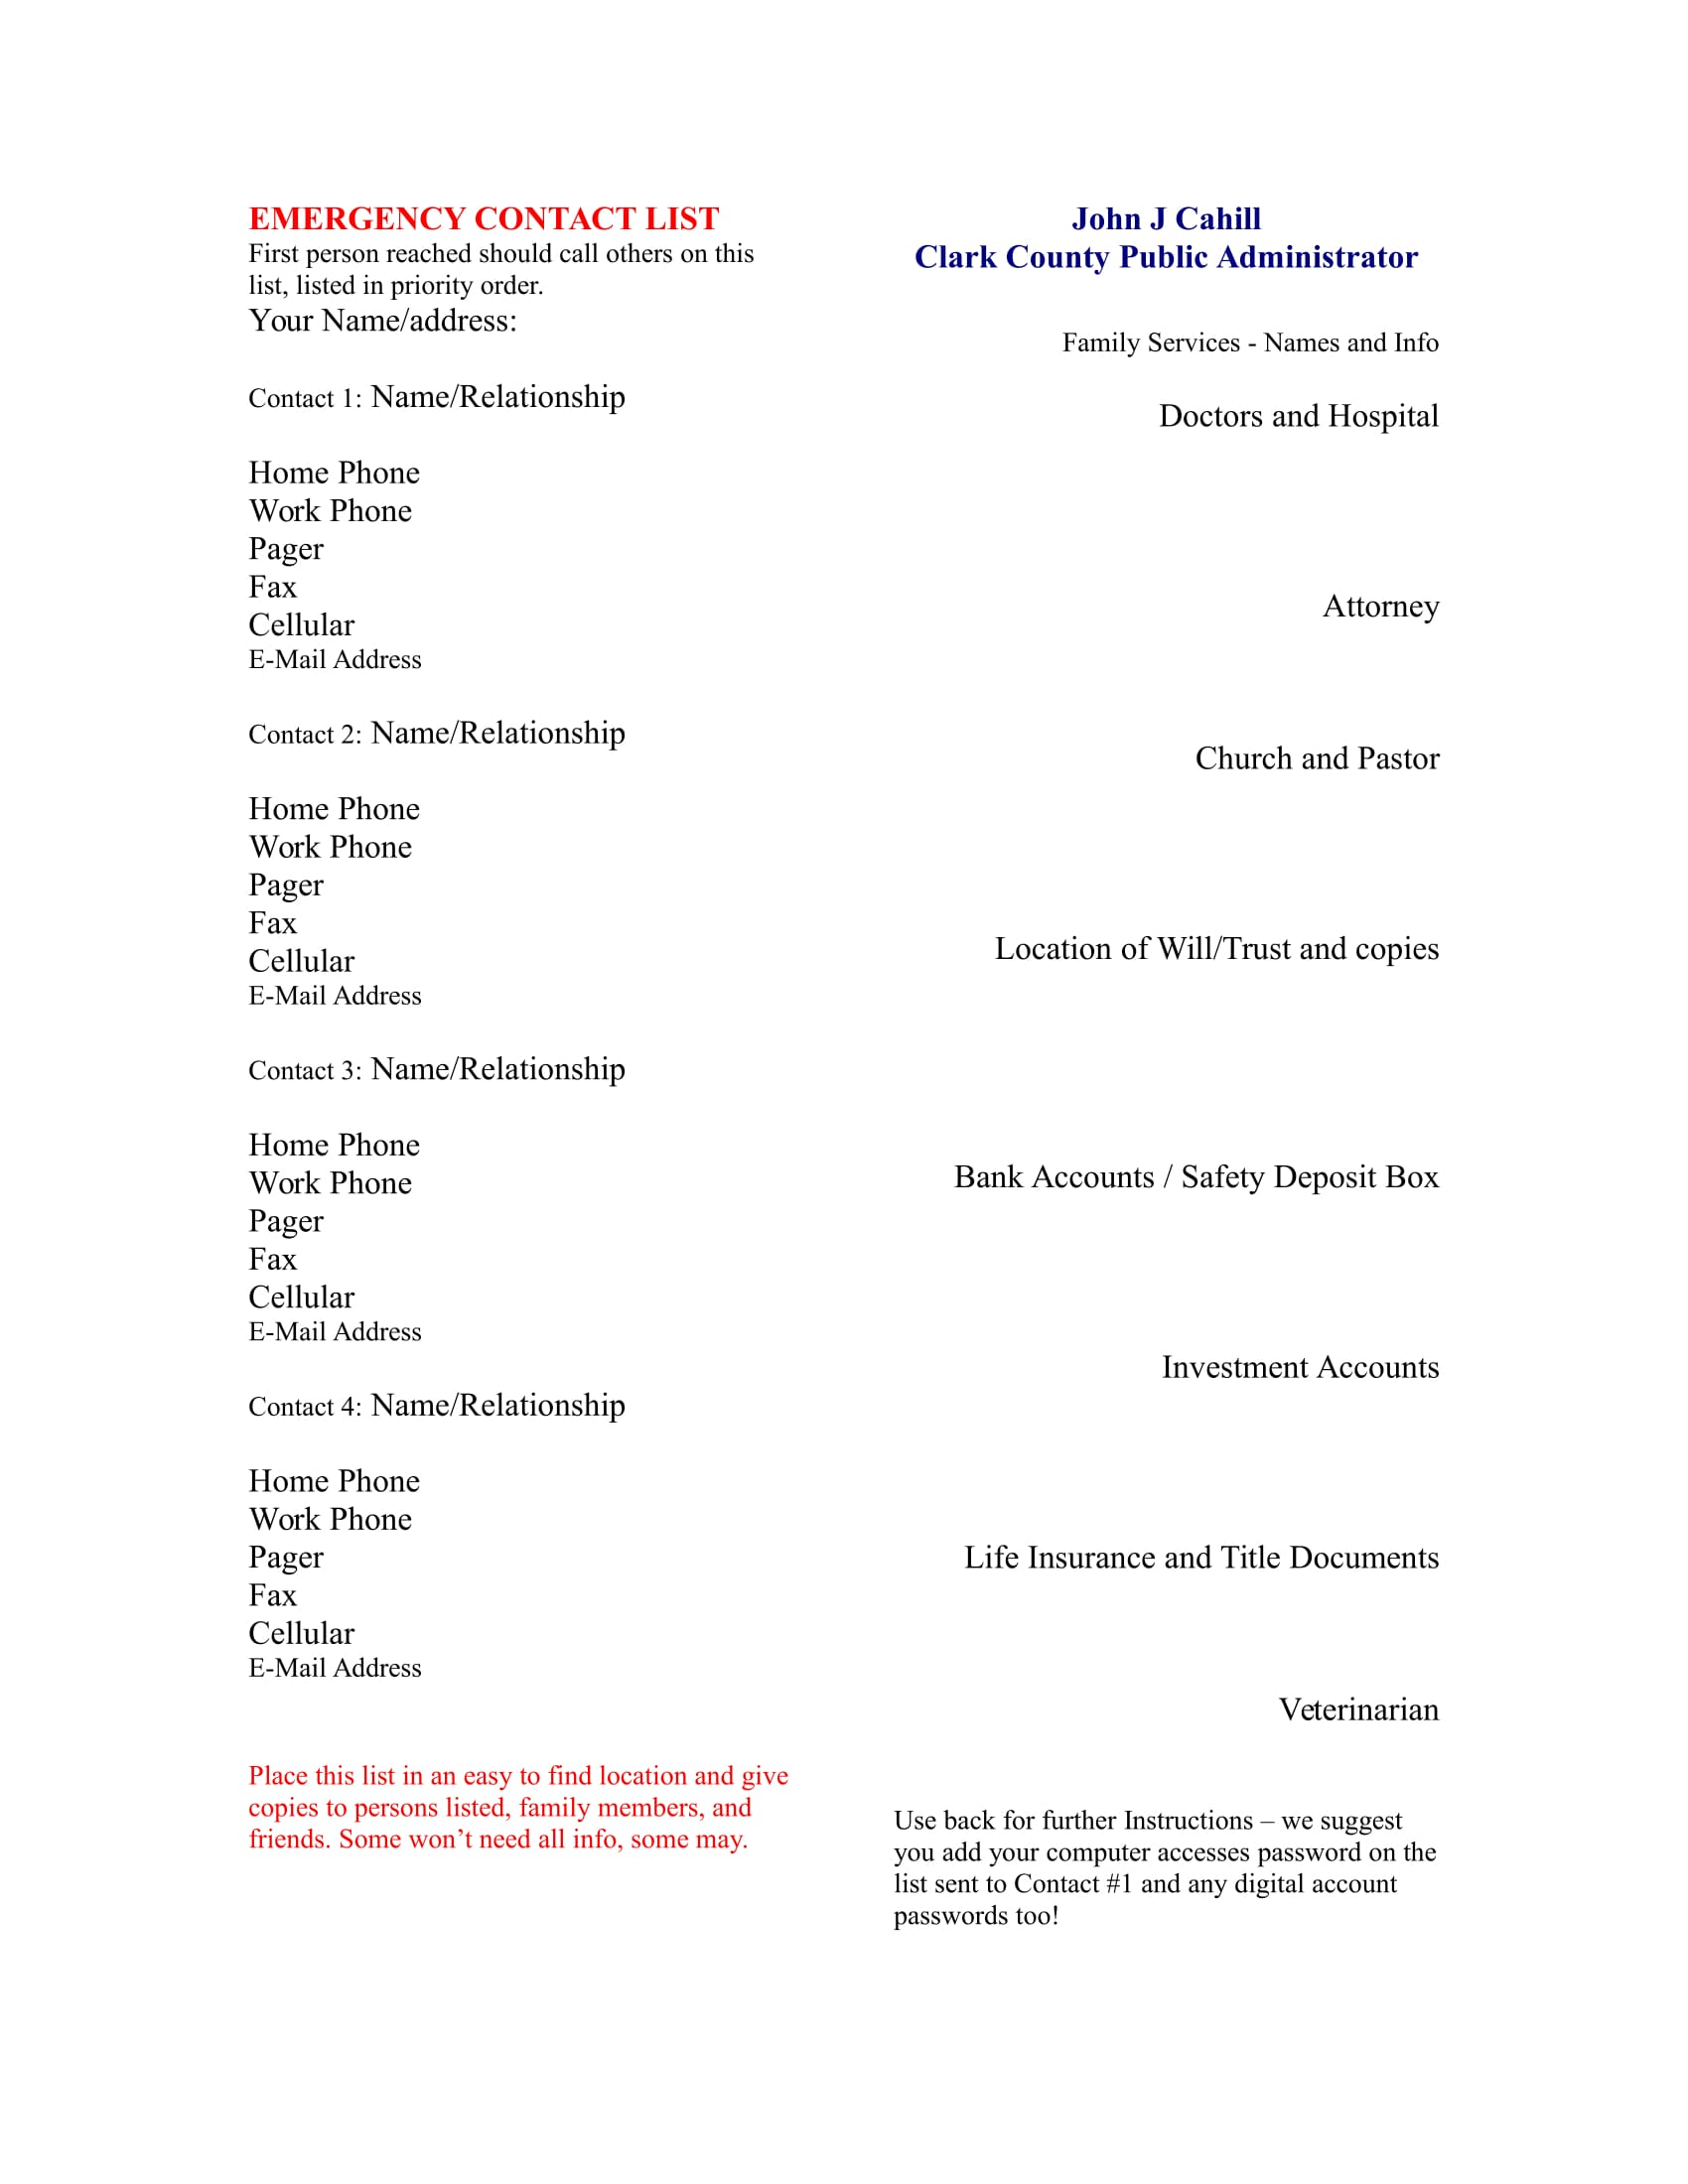 emergency contact list example